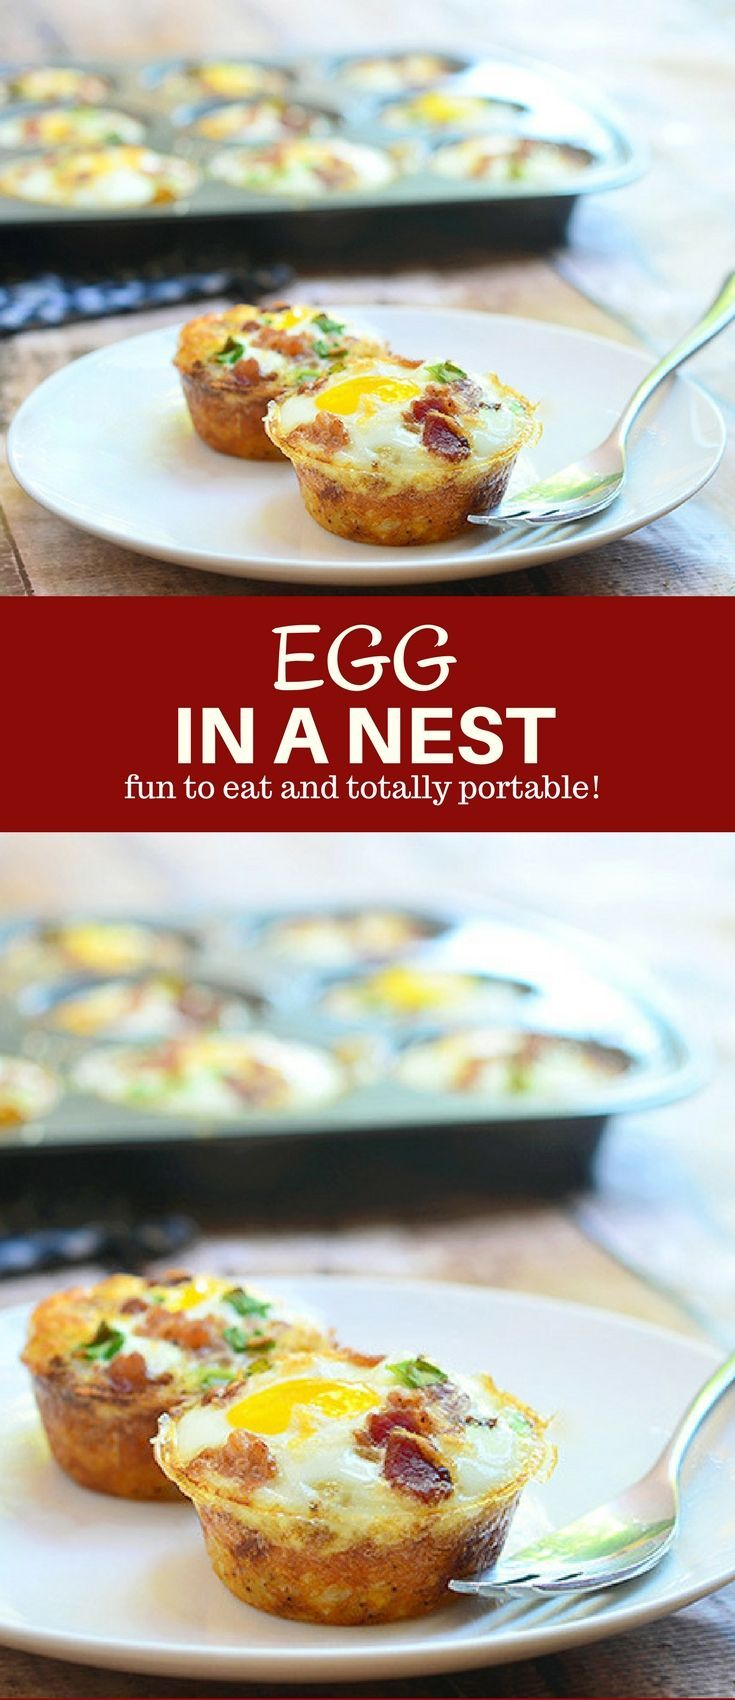 Egg in a Nest with soft yolks, crisp bacon, cheese, and green onions baked in hash brown potato nests. They're a delicious breakfast treat and totally portable for snacking on the go.